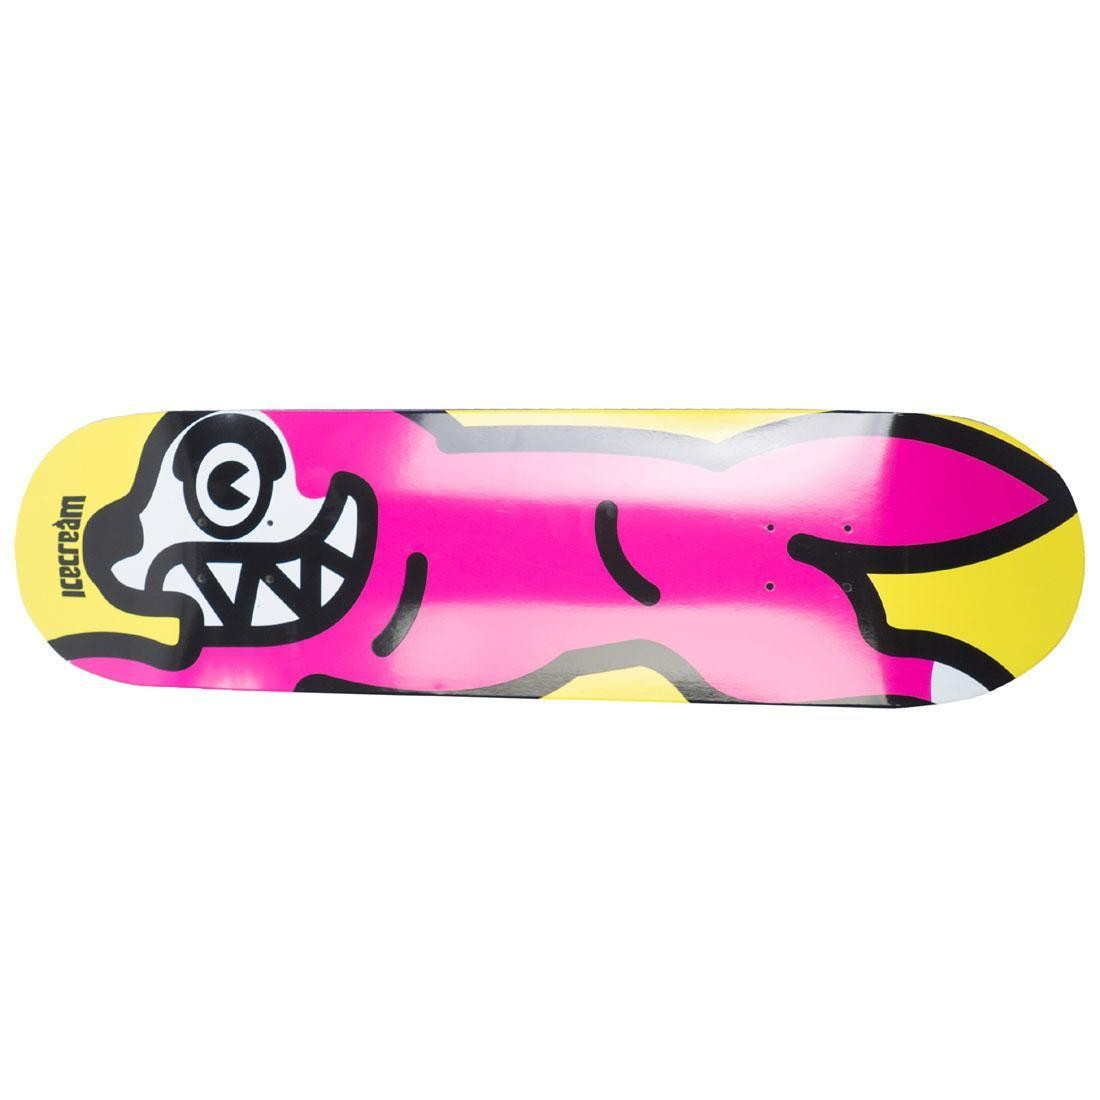 Ice Cream Brown Bread Skate Deck (yellow)